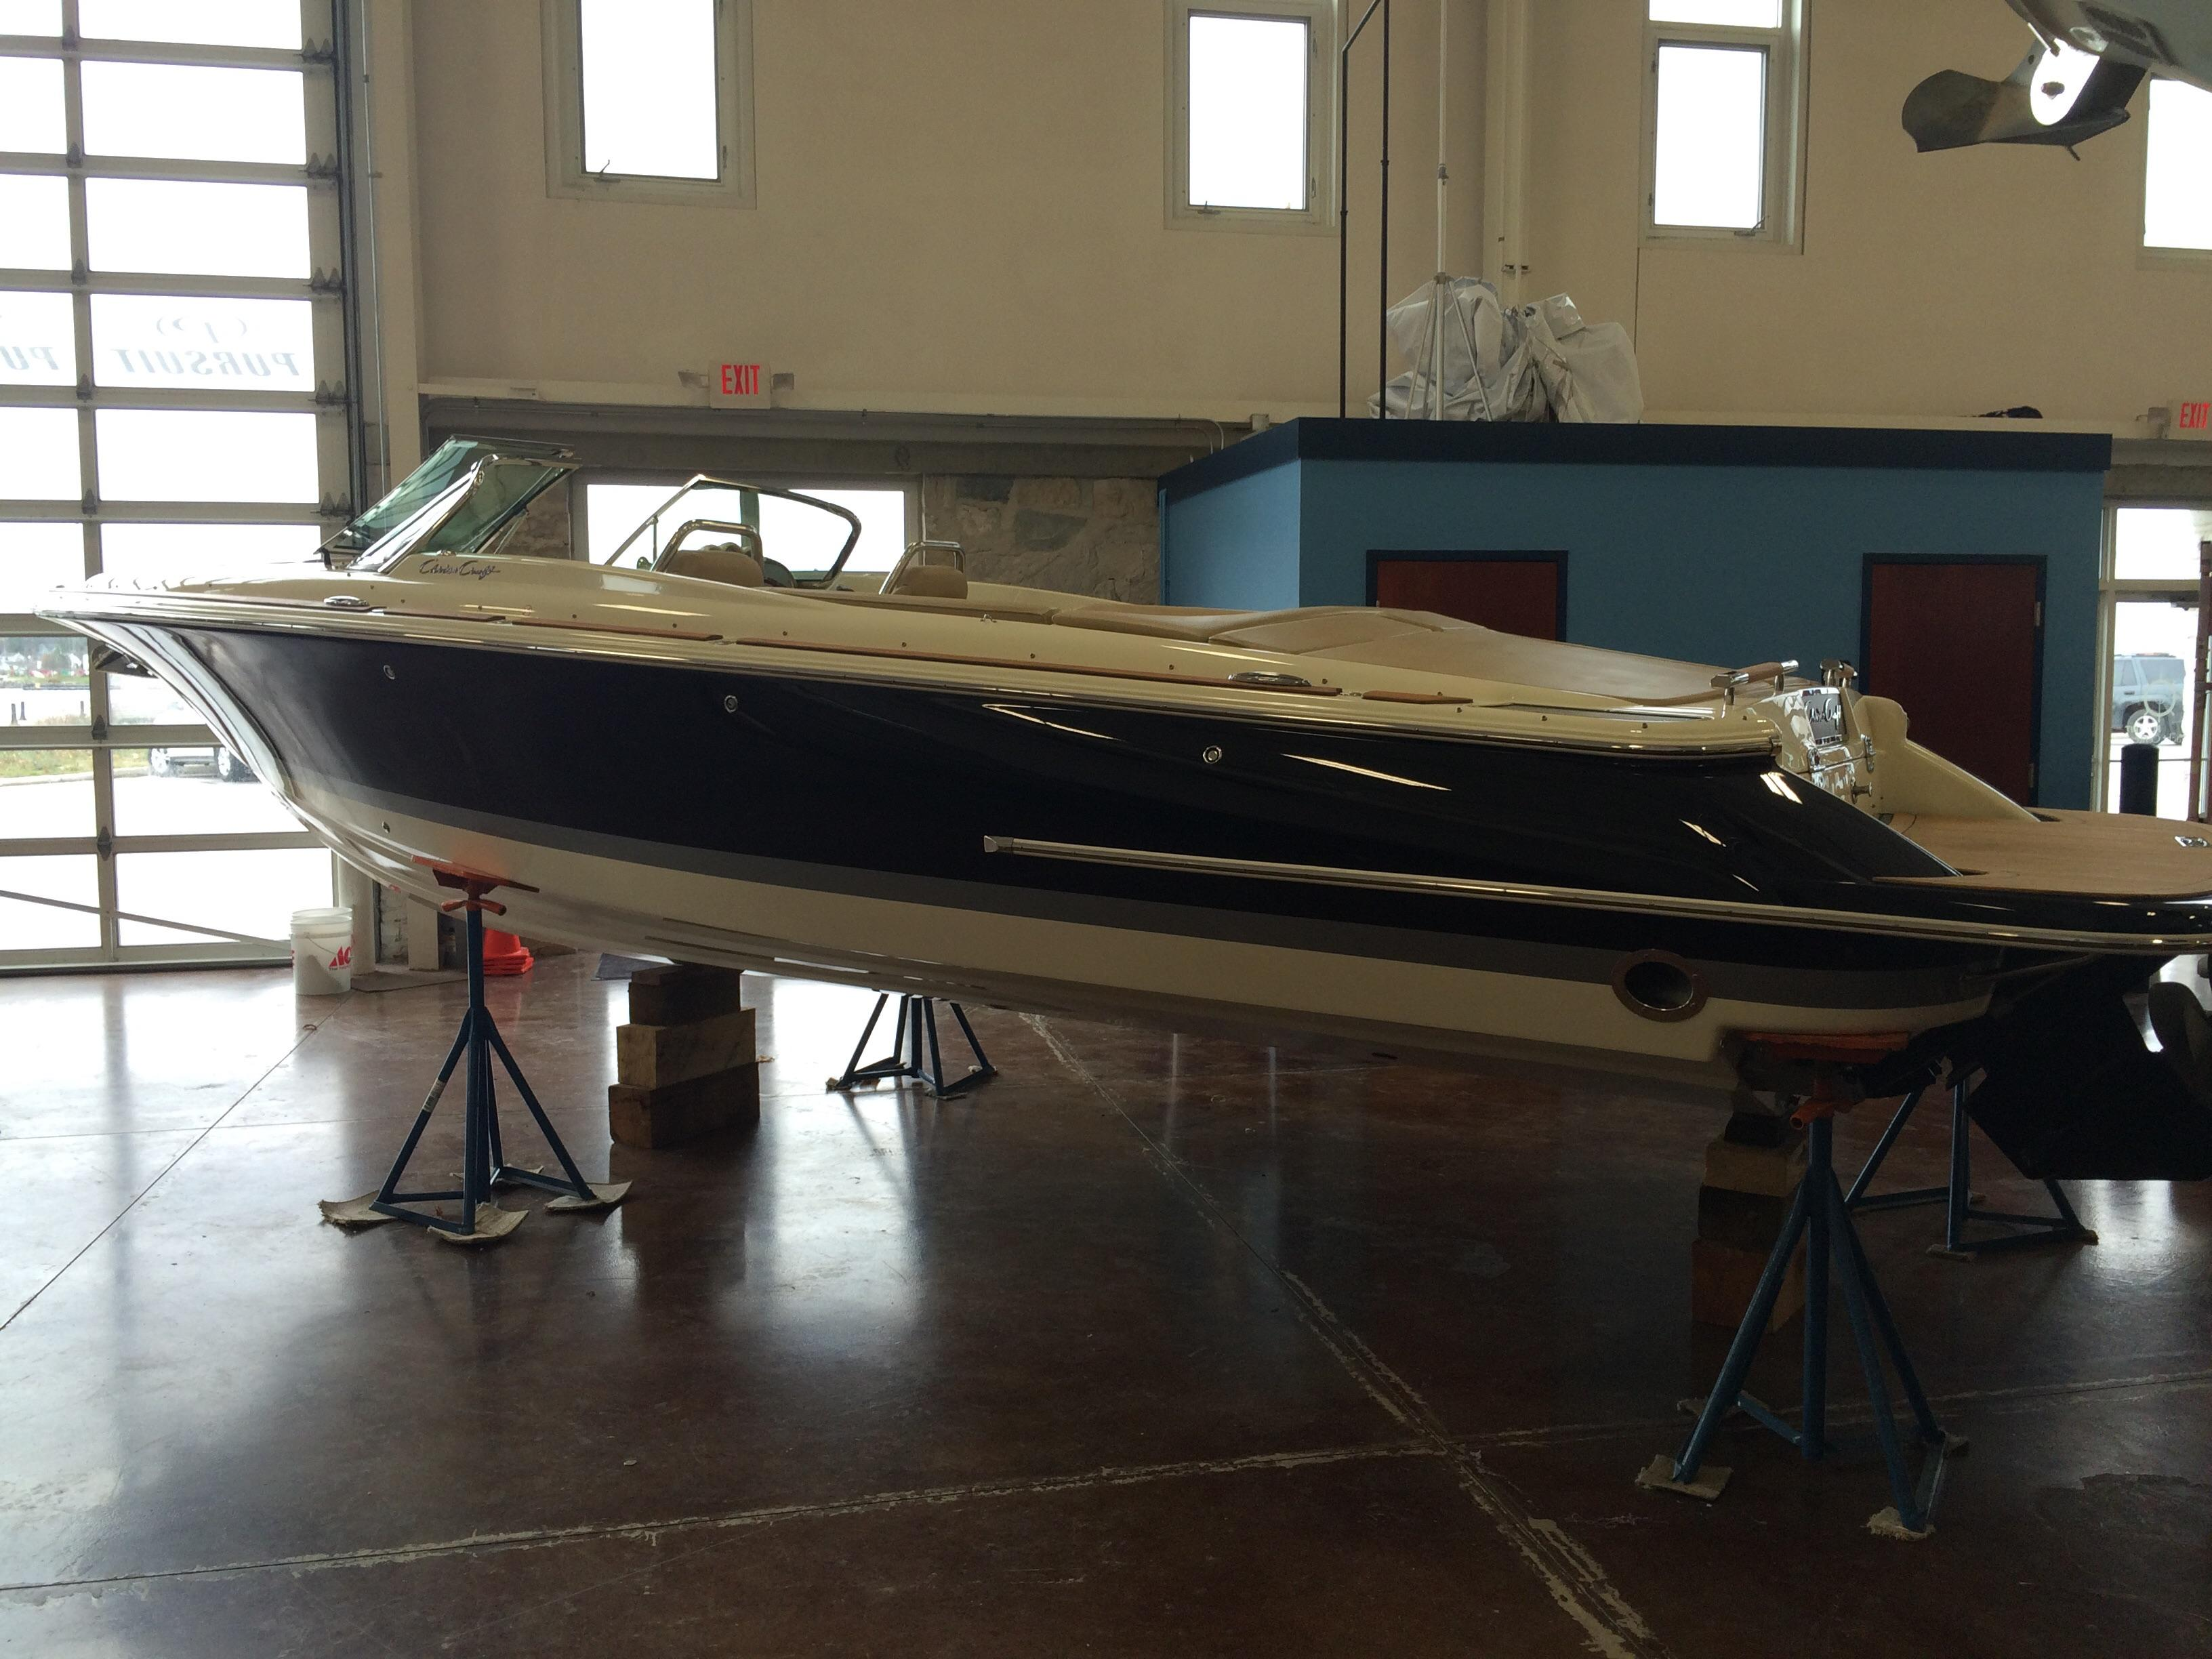 Pewaukee (WI) United States  city photo : 2016 Chris Craft Launch 25 Power Boat For Sale www.yachtworld.com